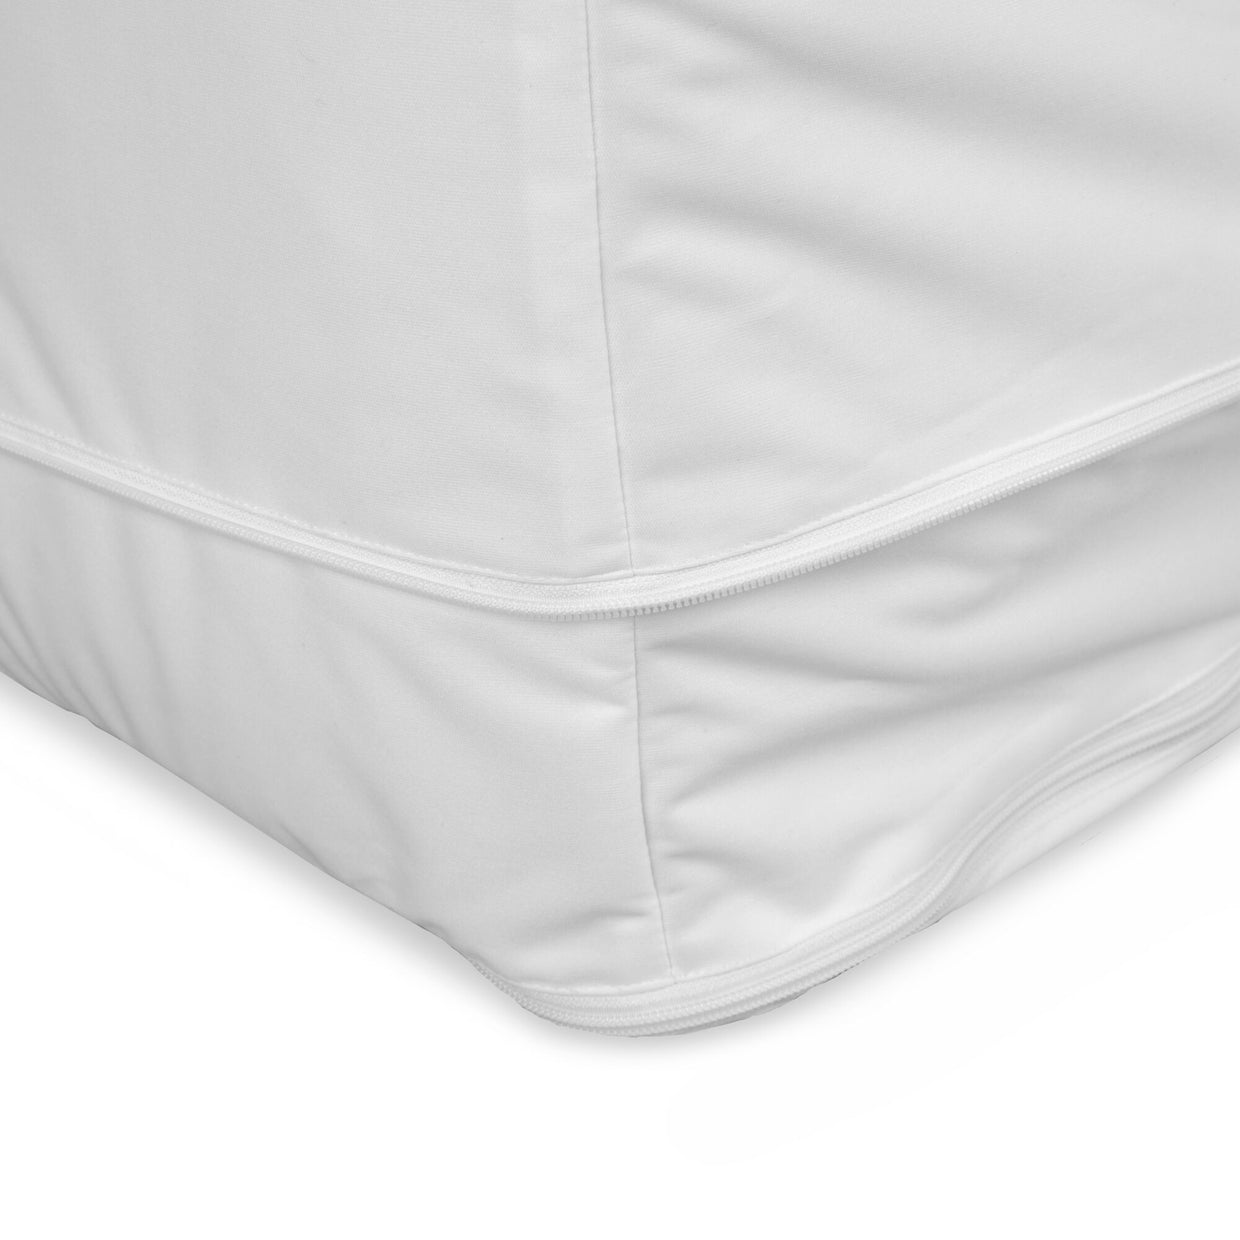 Sleep Calm Easyzip™ Mattress Encasement (Fits 12